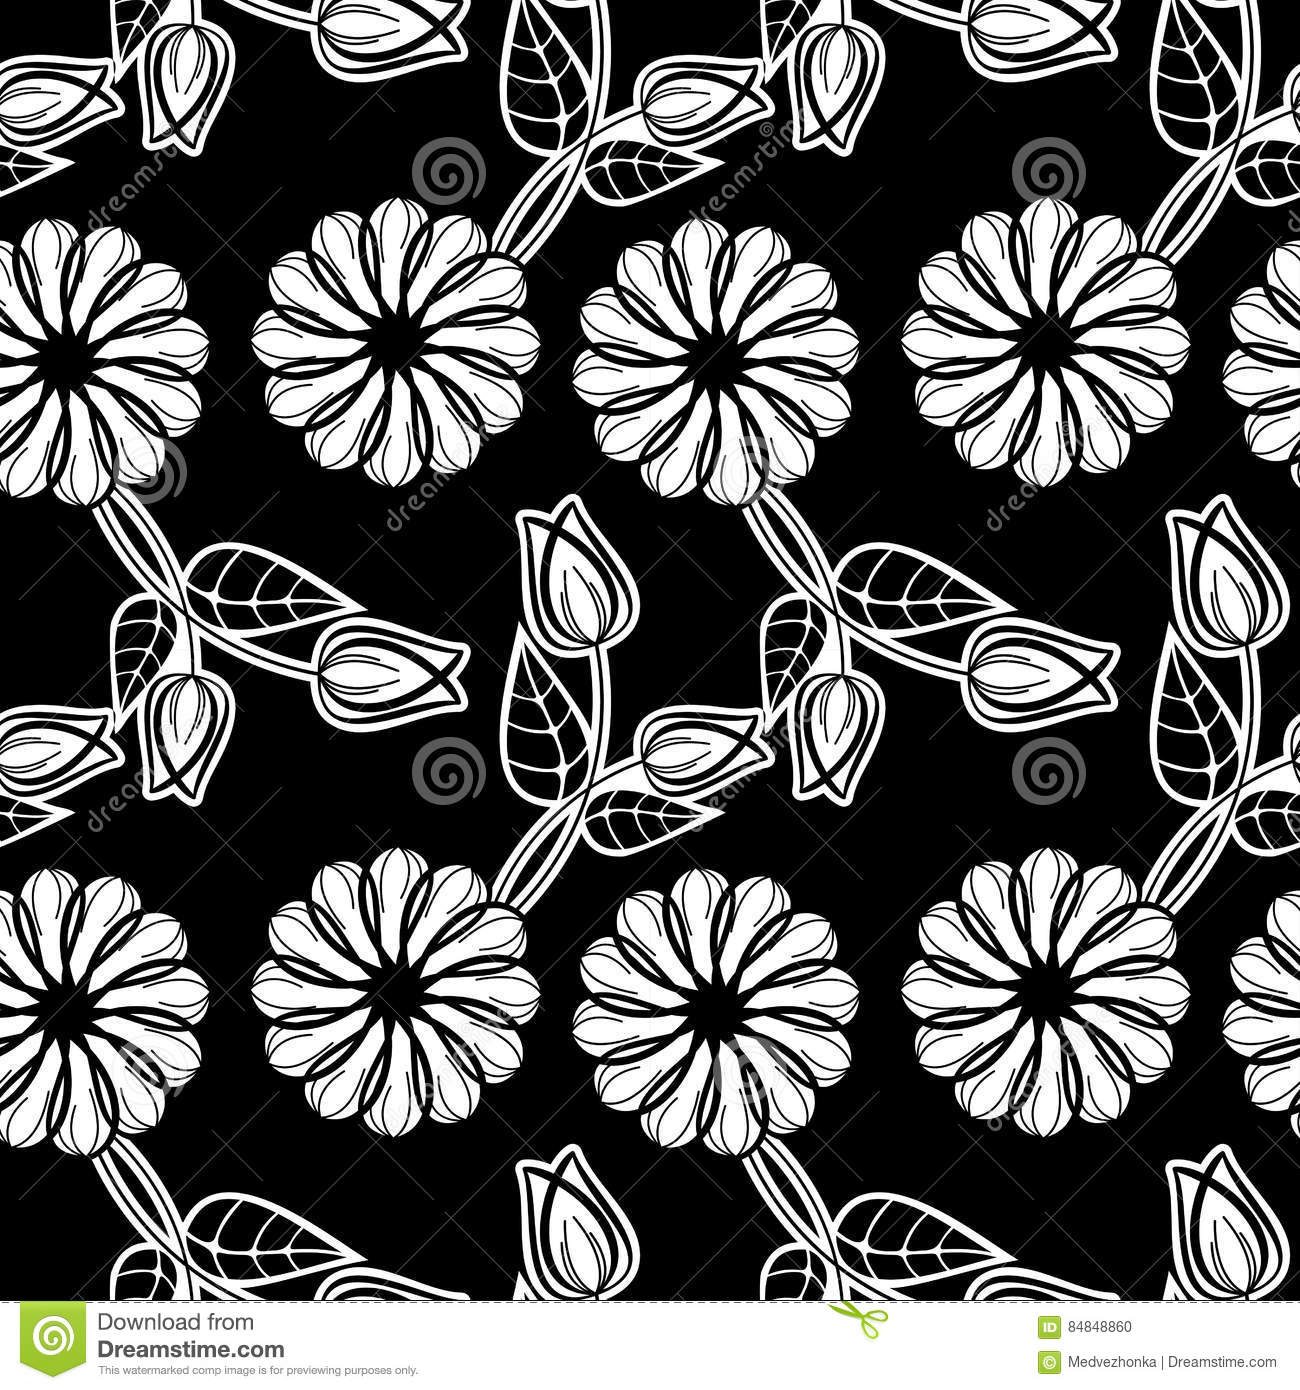 Black Flower Silhouette Pattern Royalty Free Stock Images: Black And White Seamless Floral Pattern. Raster Clip Art